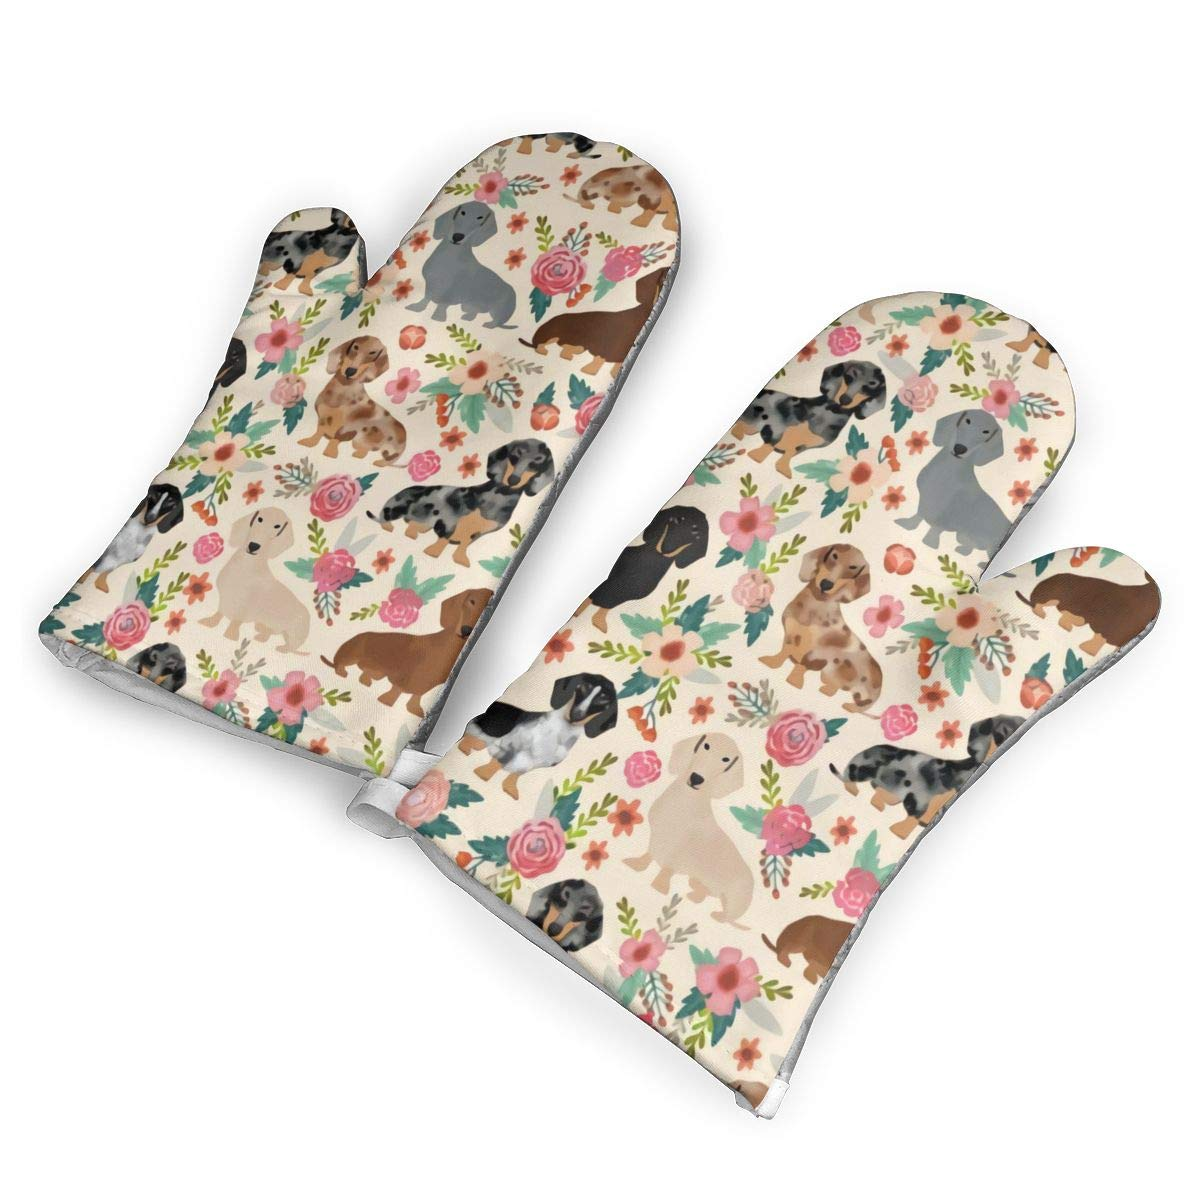 not Flowers Pink Dachshund (1) Oven Mitts with Polyester Fabric Printed Pattern,1 Pair of Heat Resistant Oven Gloves for Cooking,Baking,Grilling,Barbecue Potholders